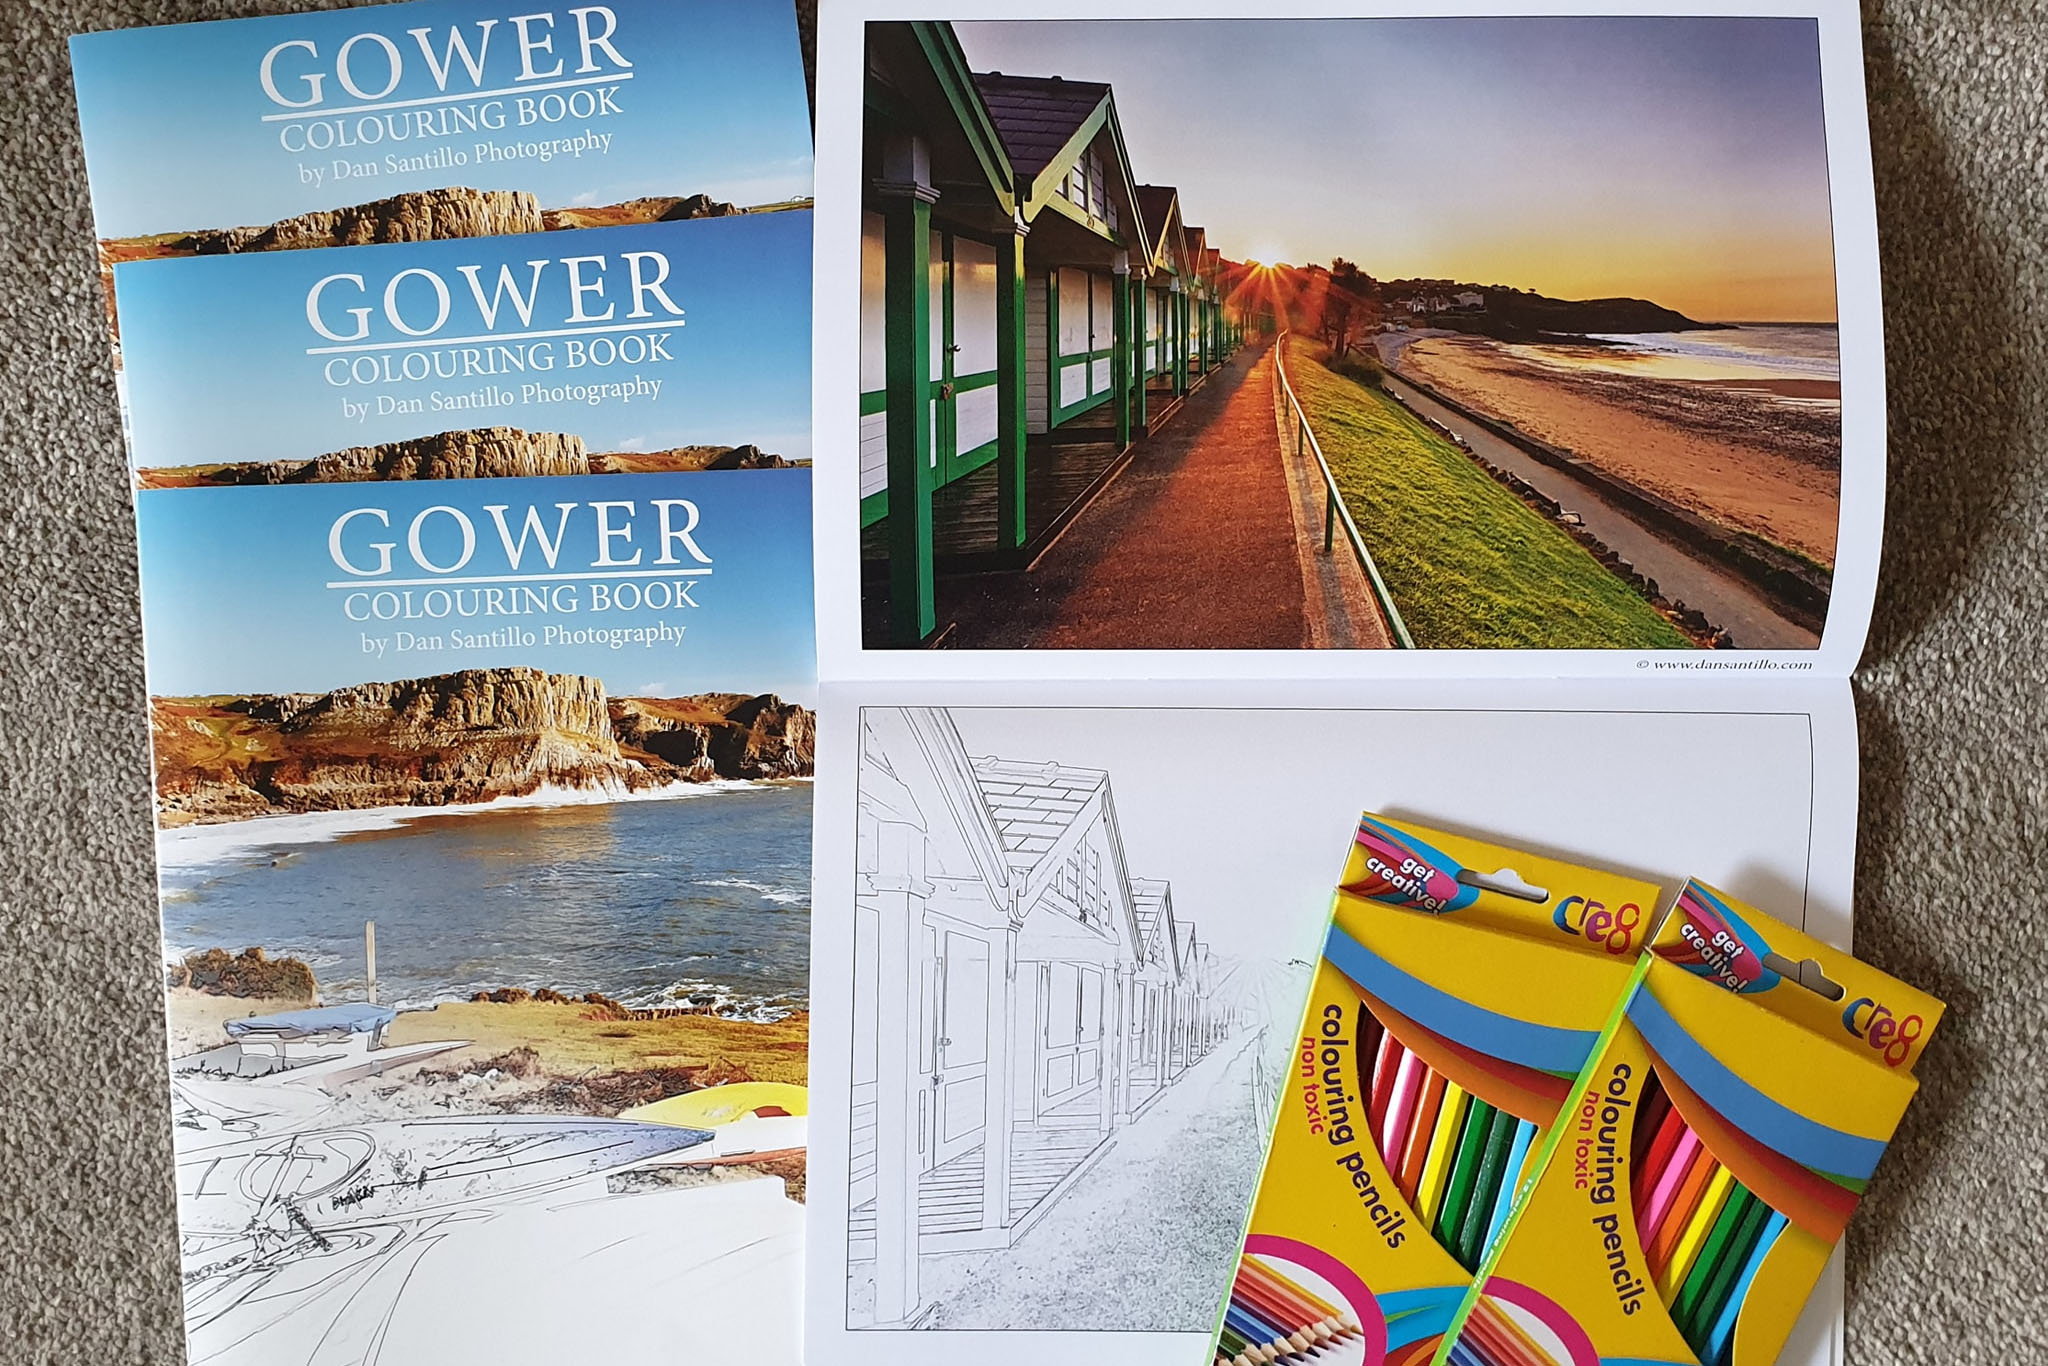 Gower Colouring Book